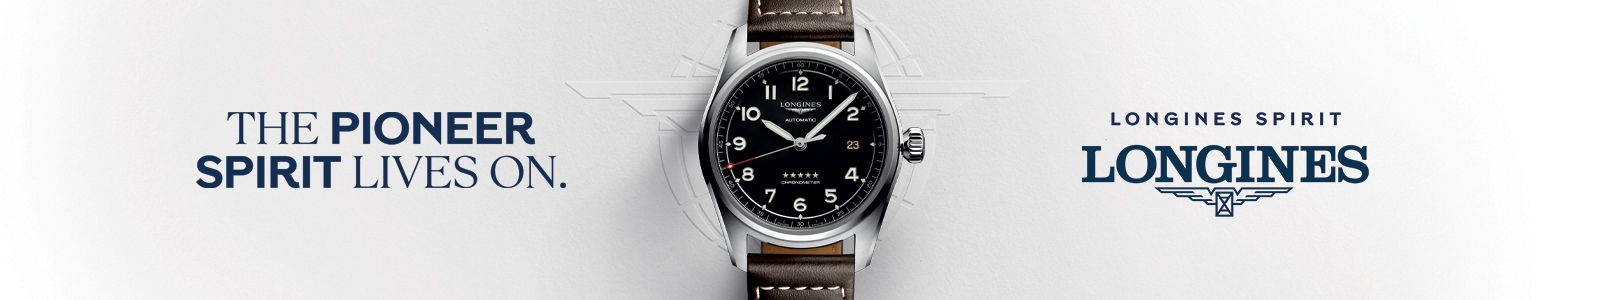 The Pioneer spirit Lives on, Longines Spirit, Longines